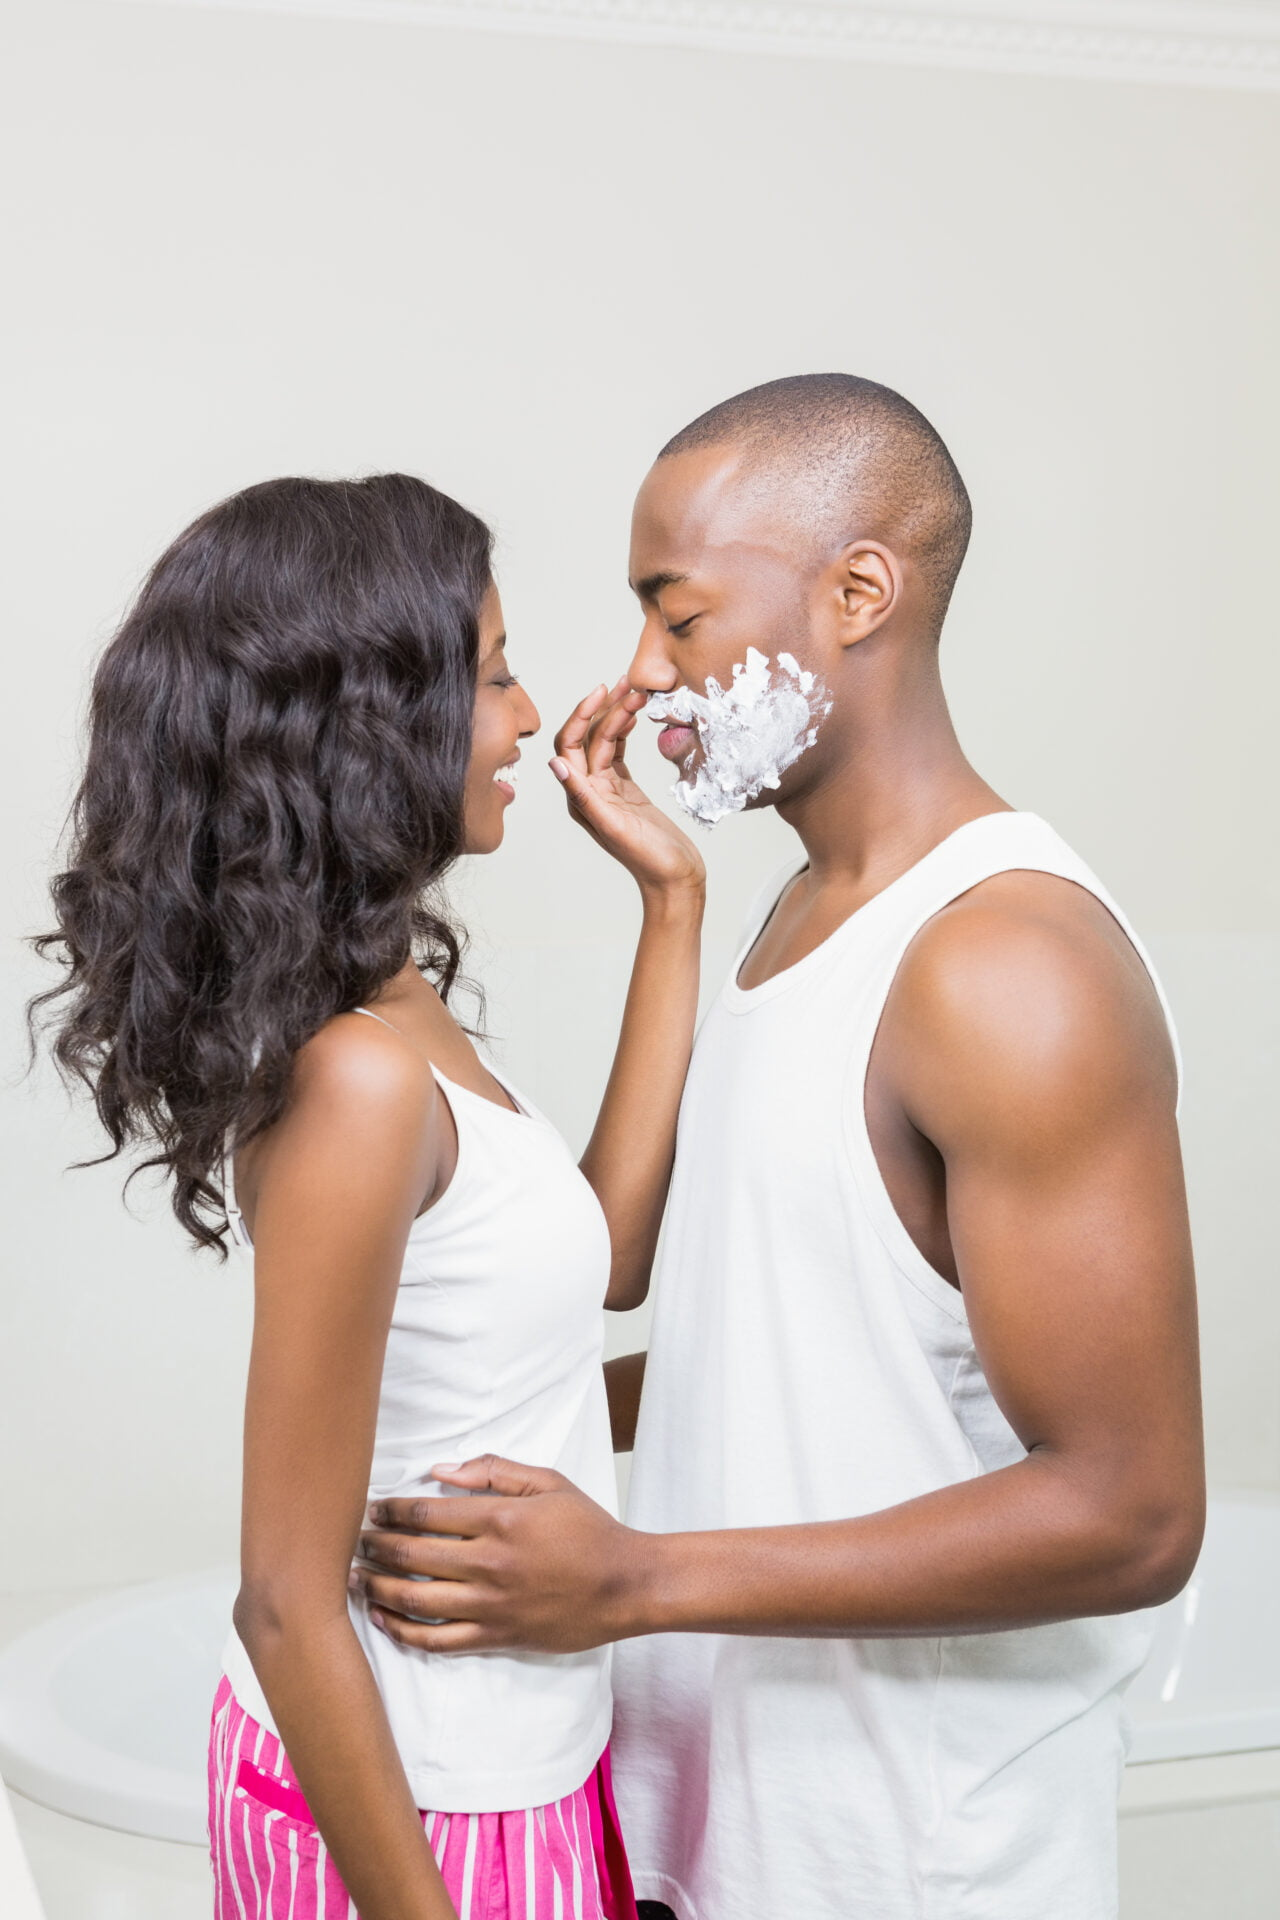 Young woman applying shaving cream on young mans face in the bathroom